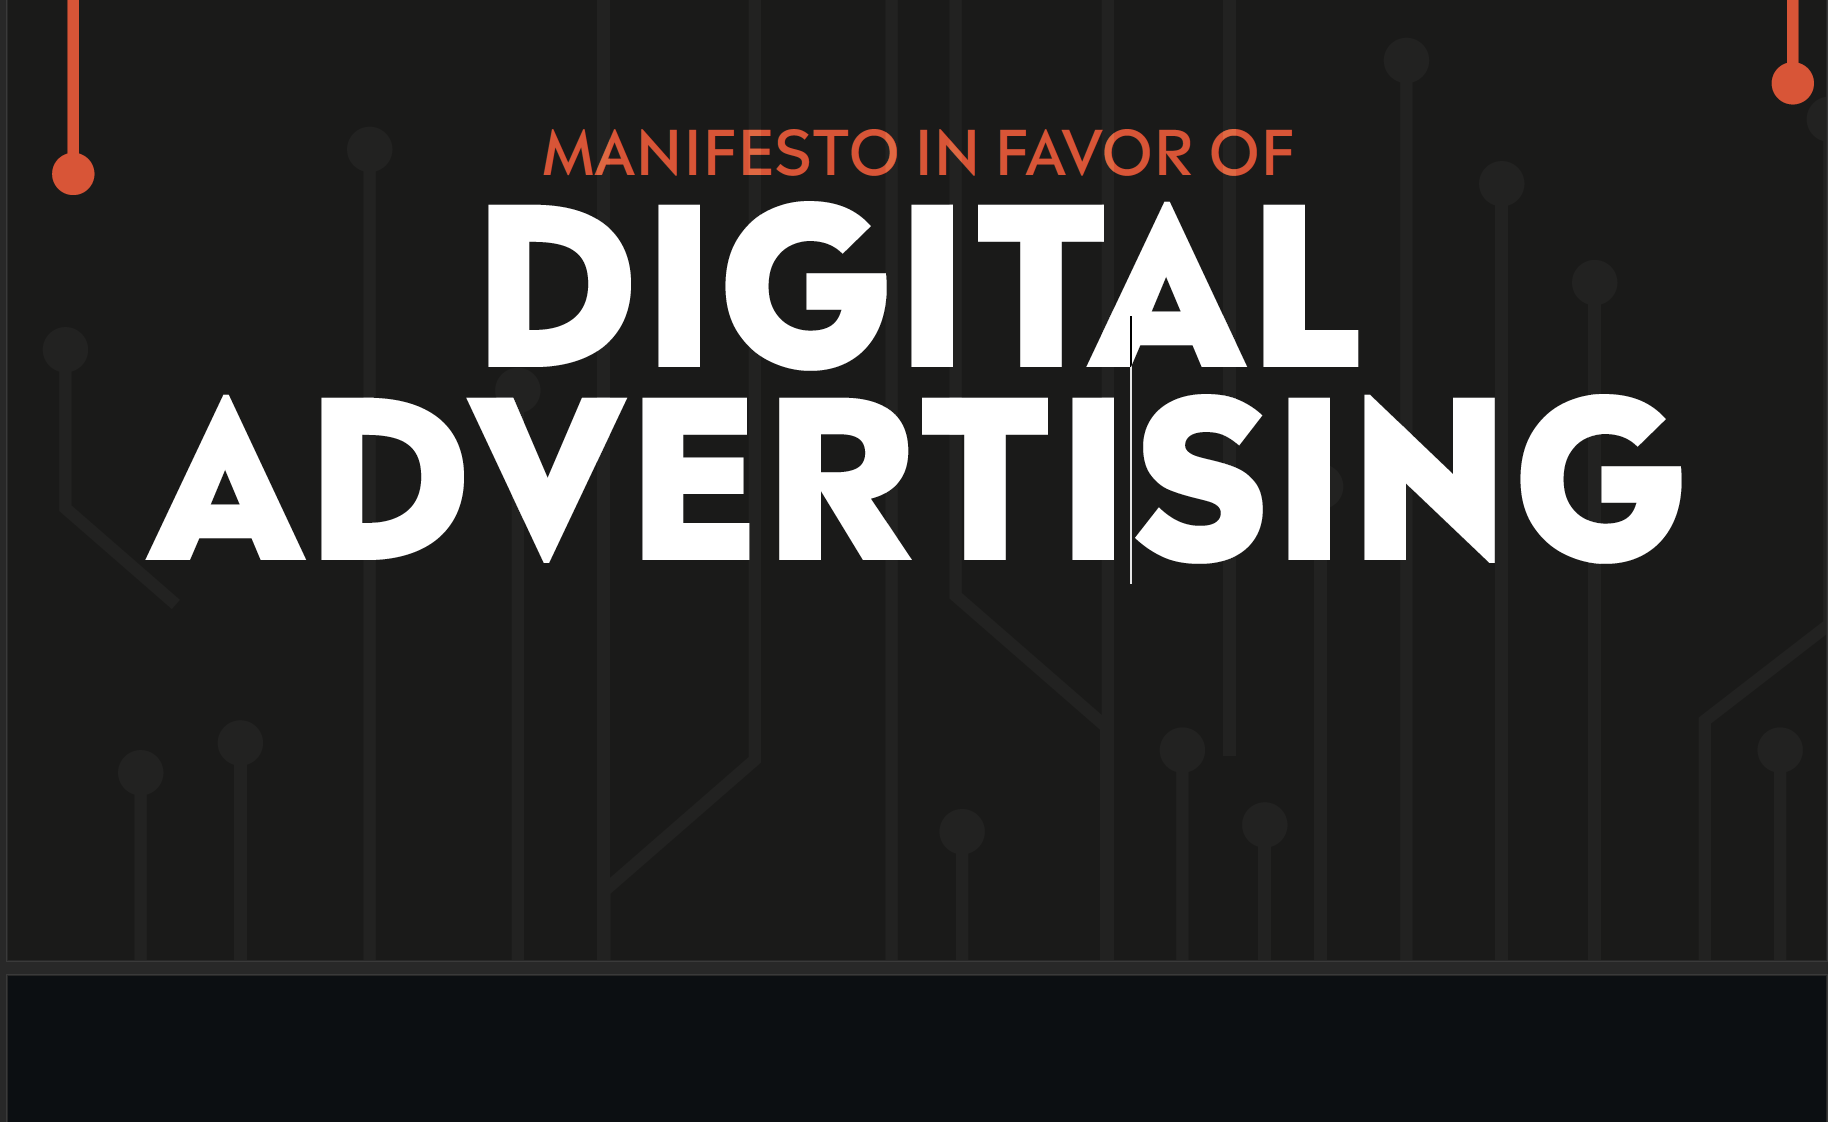 """IAA Italy announces the signing of the """"Manifesto in favor of Digital Advertising"""""""